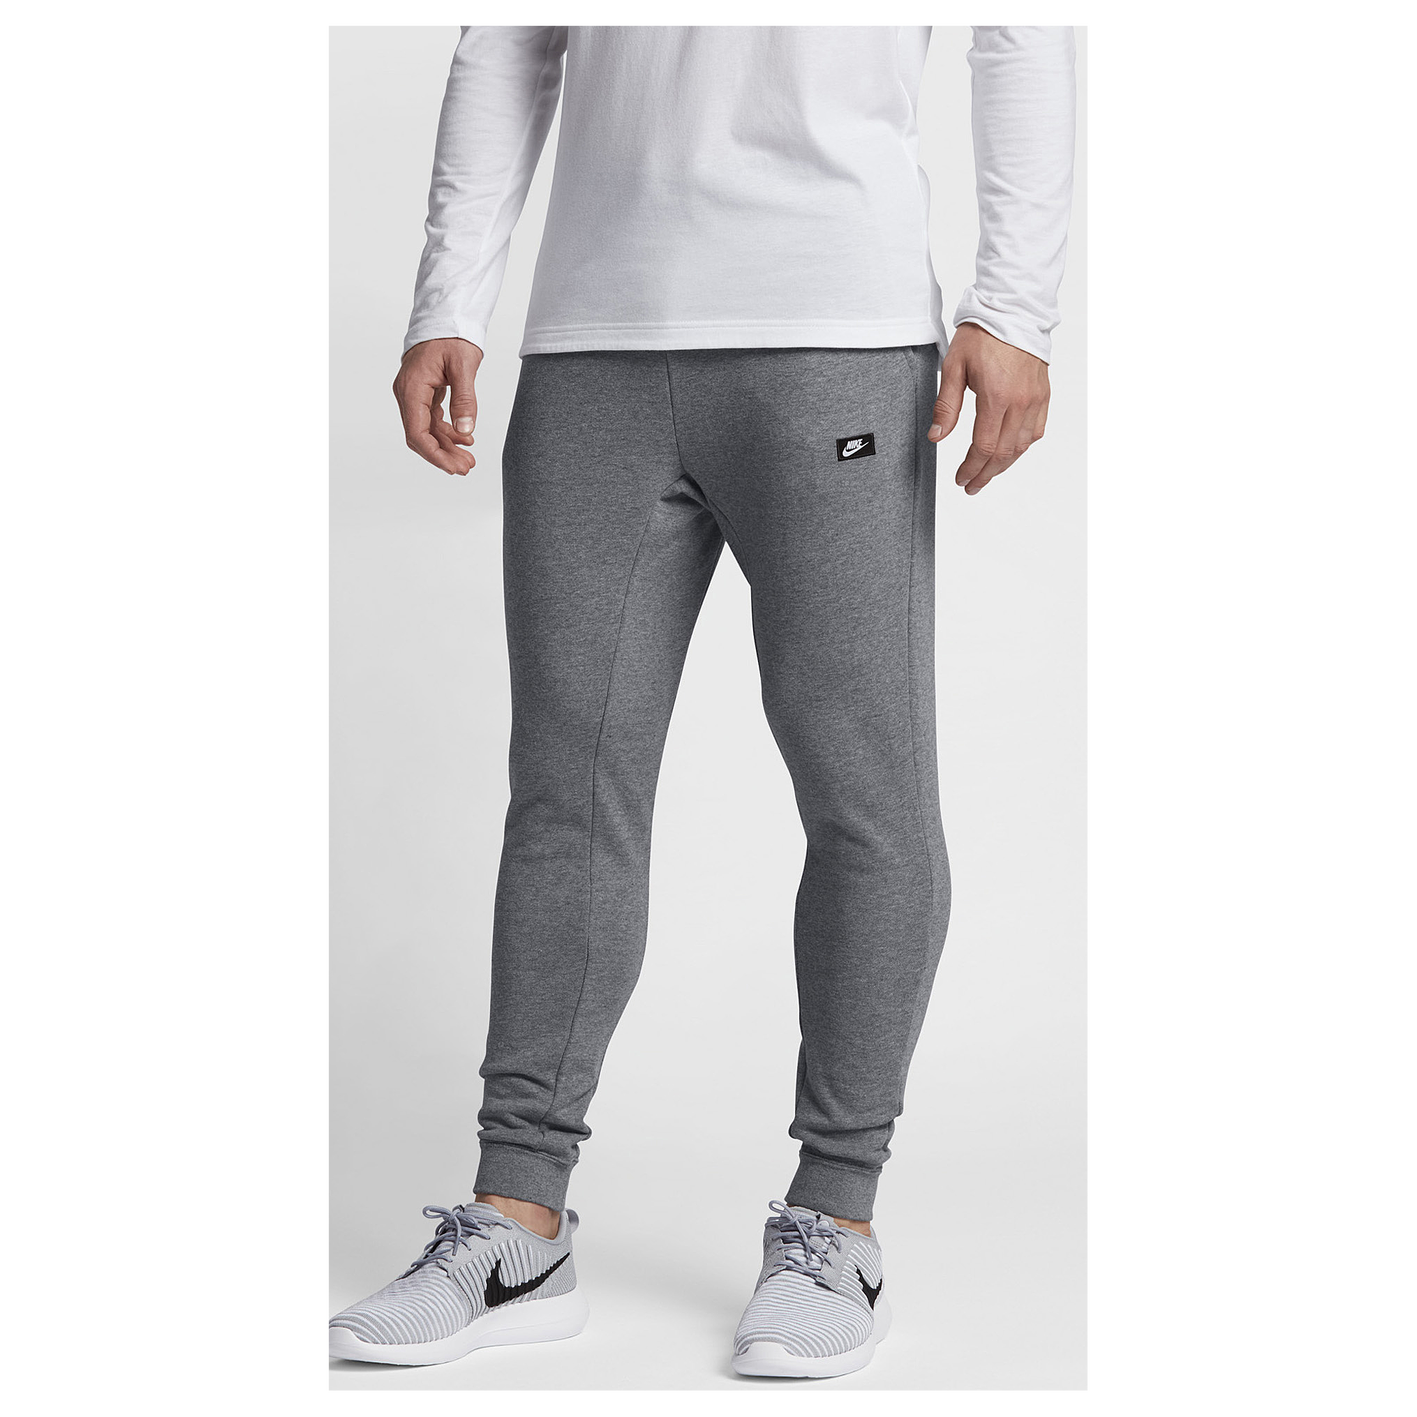 a4cef26be6c6 Nike Modern Jogger - Men s - Casual - Clothing - Carbon Heather Dark ...